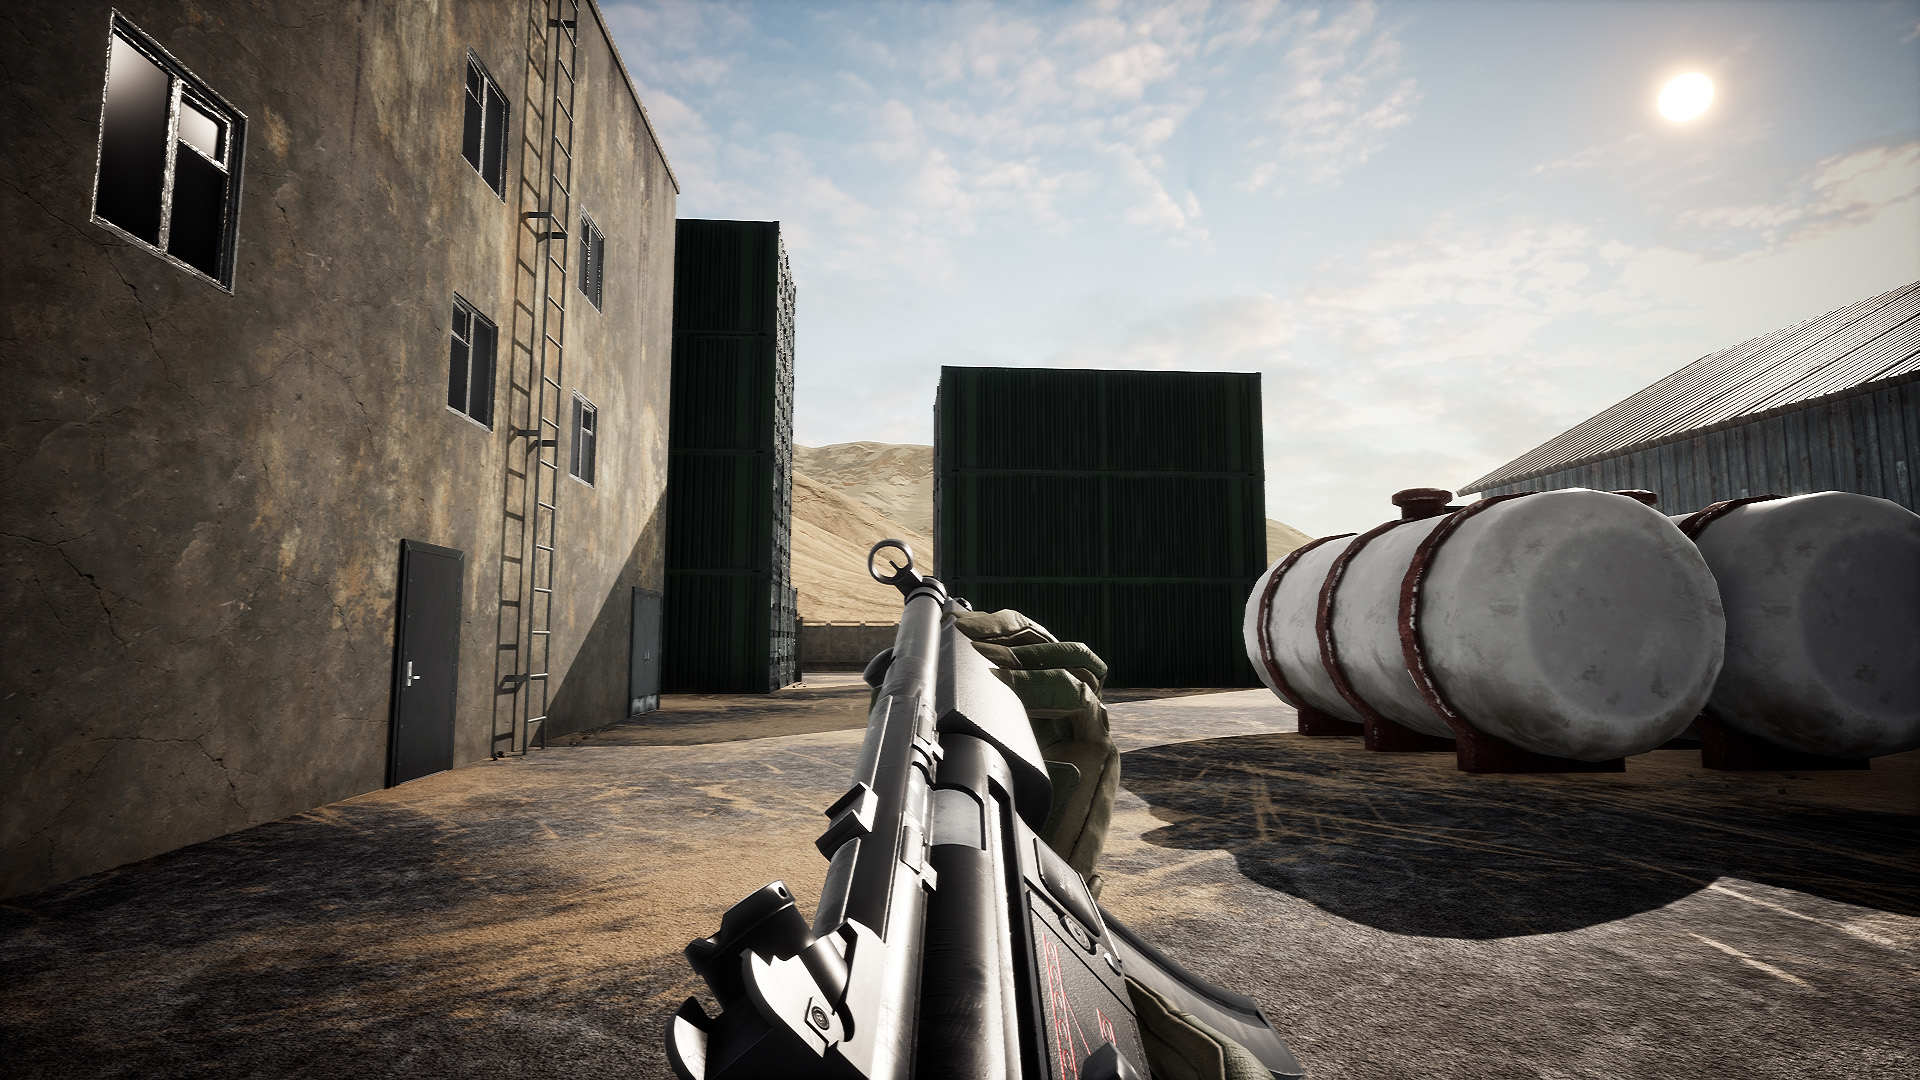 Tip of the Spear is gunning for best new military FPS of 2020